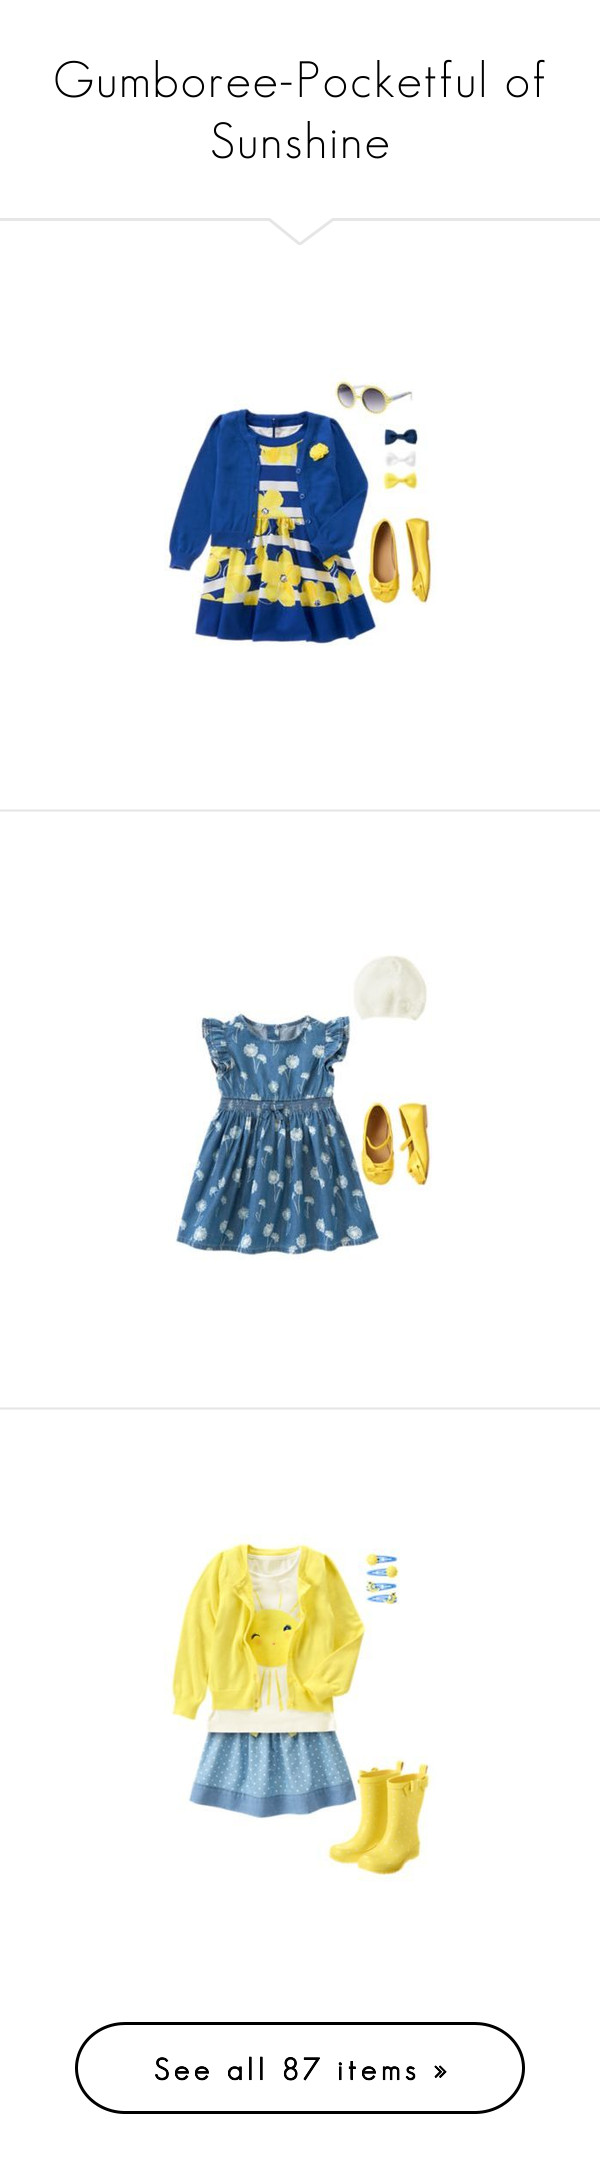 """Gumboree-Pocketful of Sunshine"" by kassijade ❤ liked on Polyvore featuring hair, baby, kids, children, dresses, pocketful of sunshine, kids clothes and little girl"